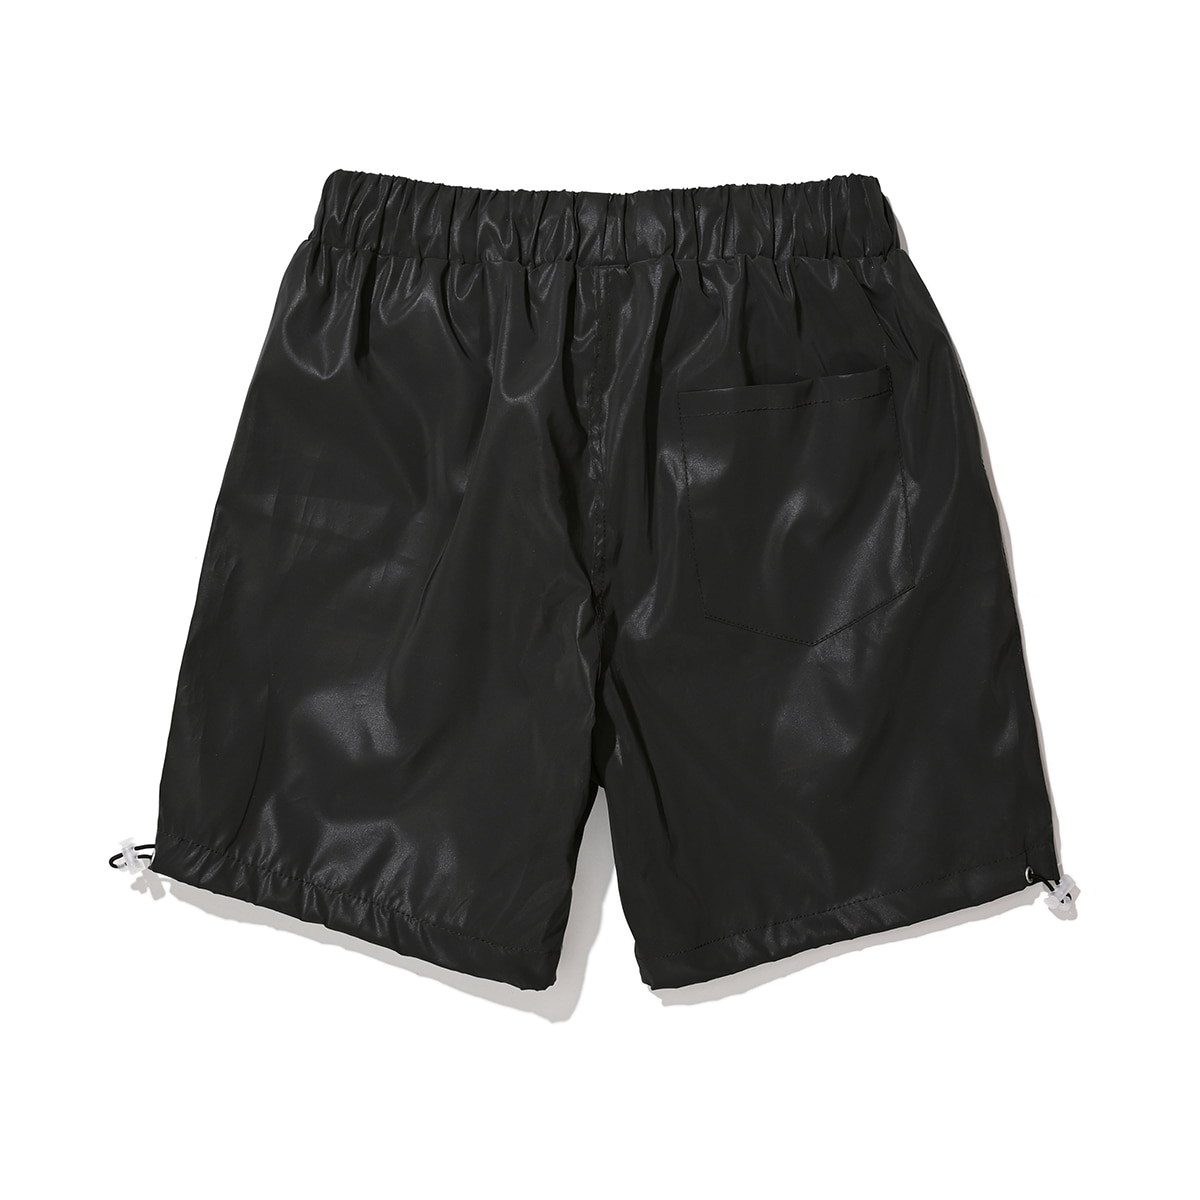 3M Reflective String Shorts (black)